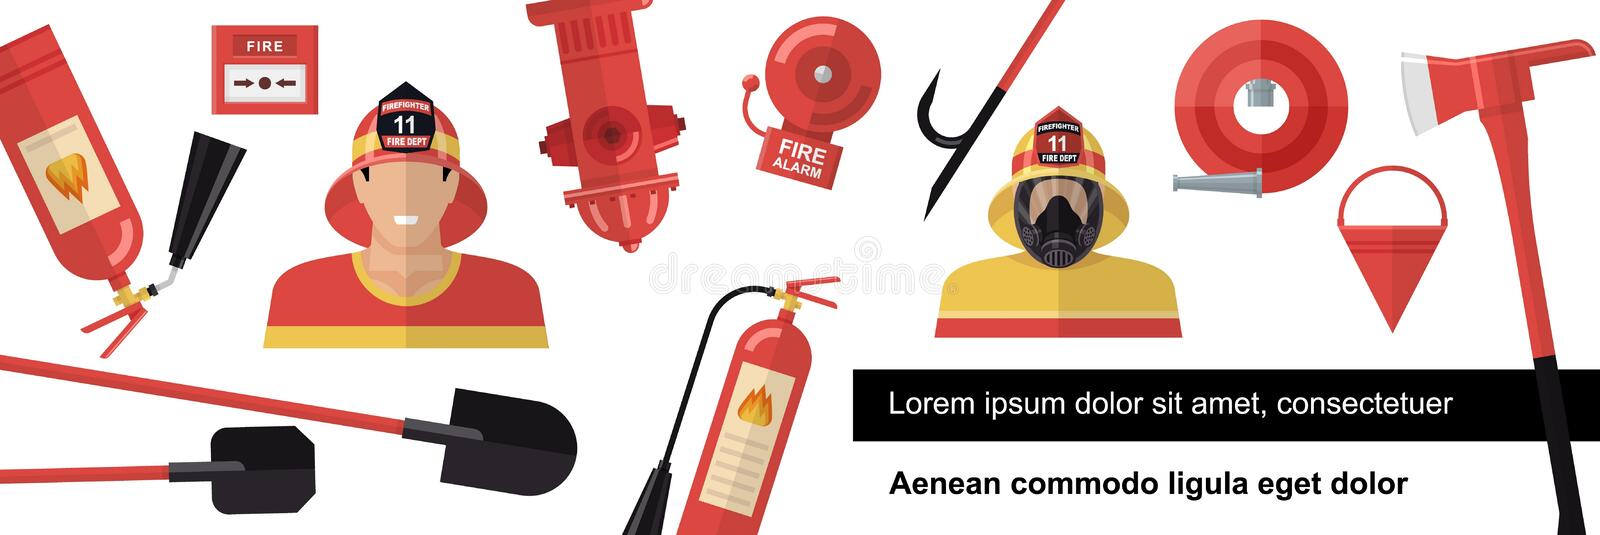 Flat Firefighter Colorful Template. With firemen shovels axe alarm bell fire hydrant extinguishers hose bucket vector illustration royalty free illustration